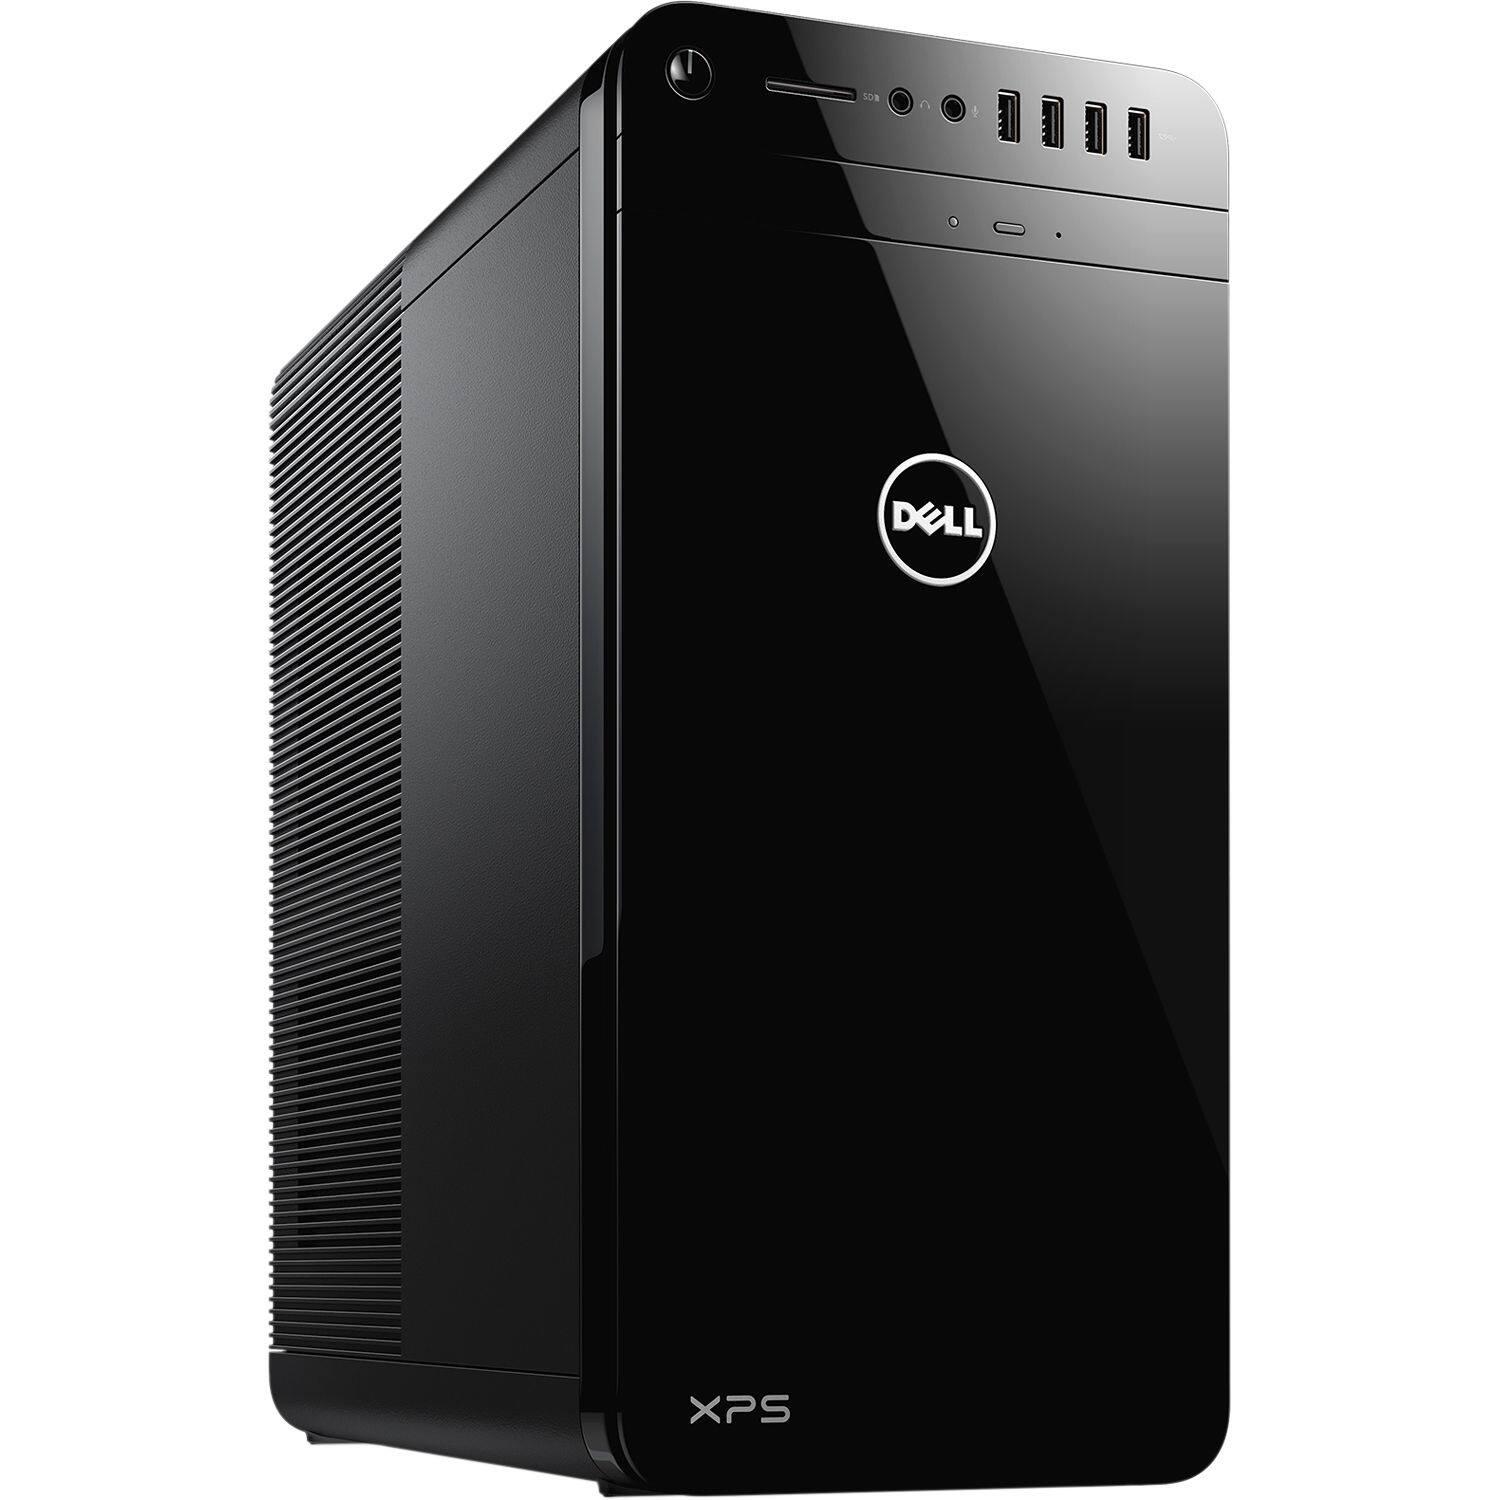 Dell XPS 8910 Desktop I7 6700K 16GB DDR4 32GB SSD 2TB HDD GTX